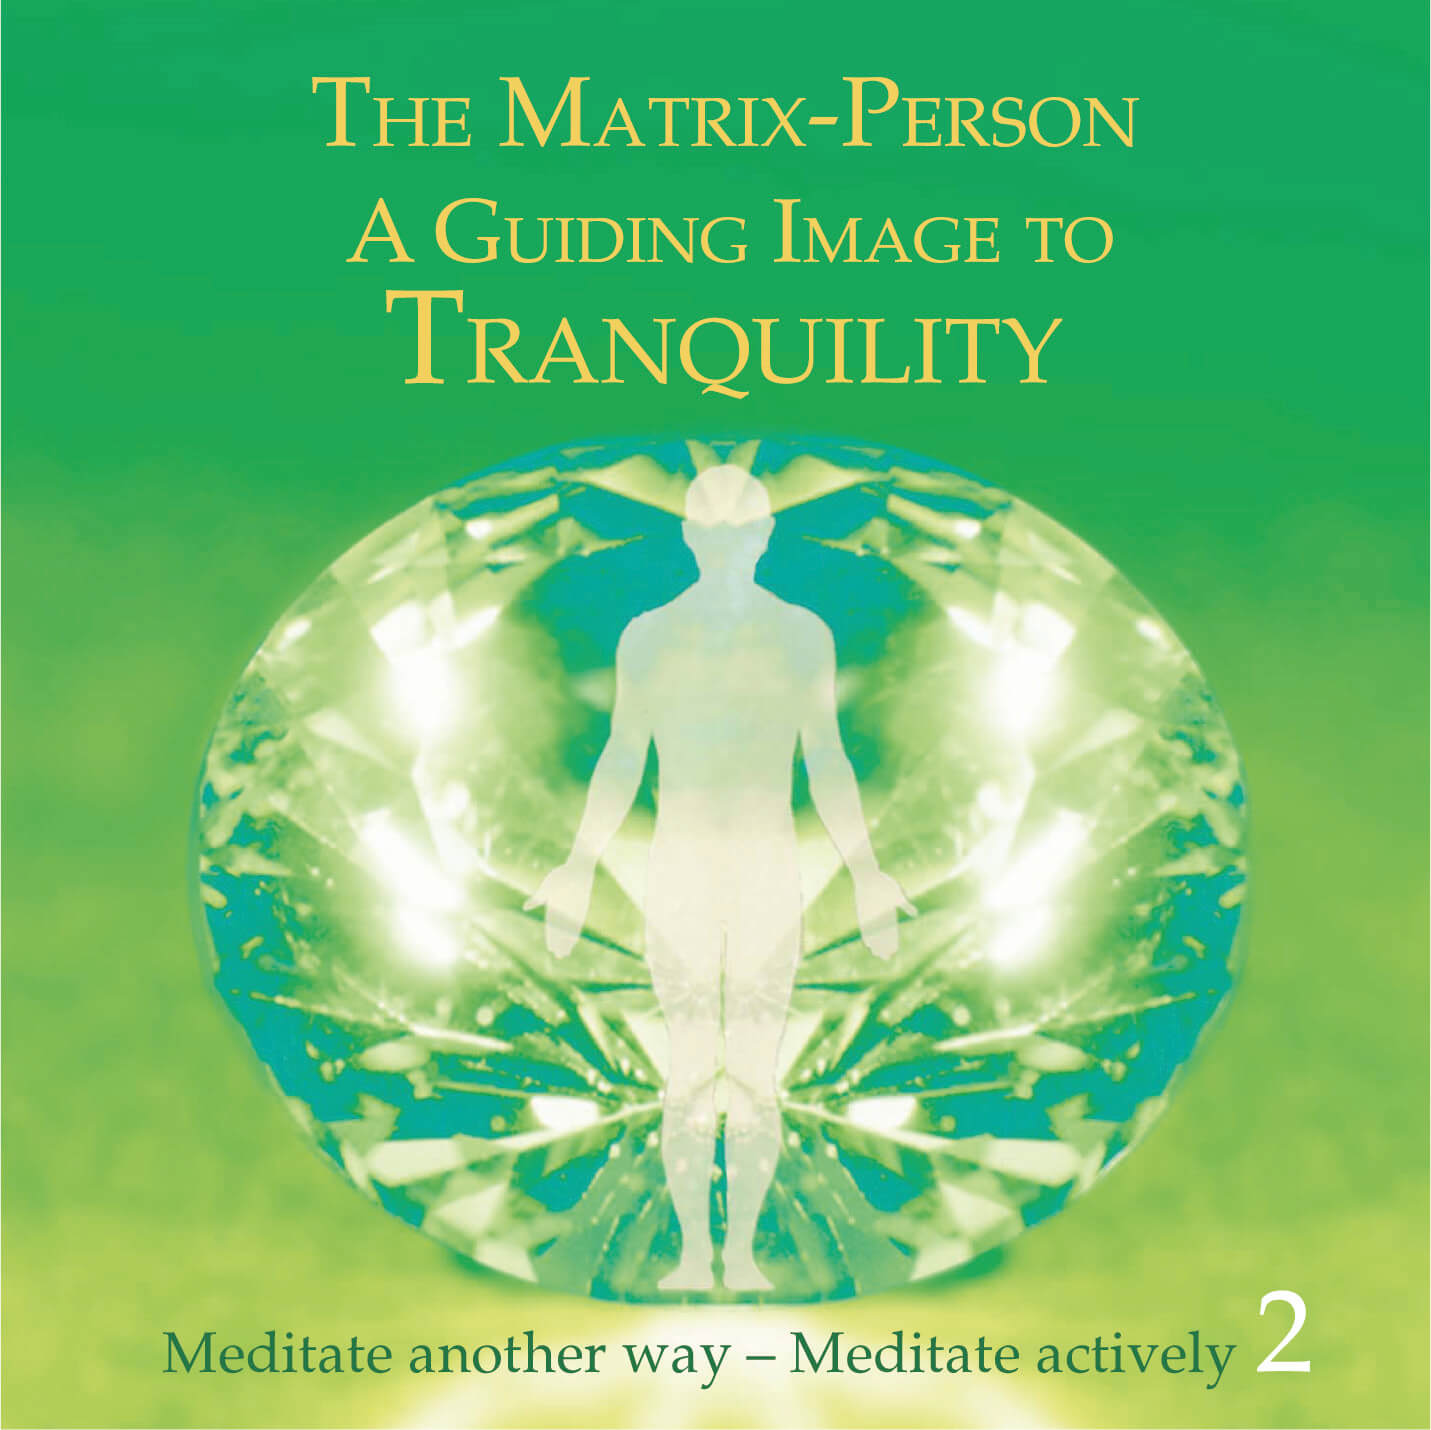 The Matrix Person - A Guiding Image to Tranquility